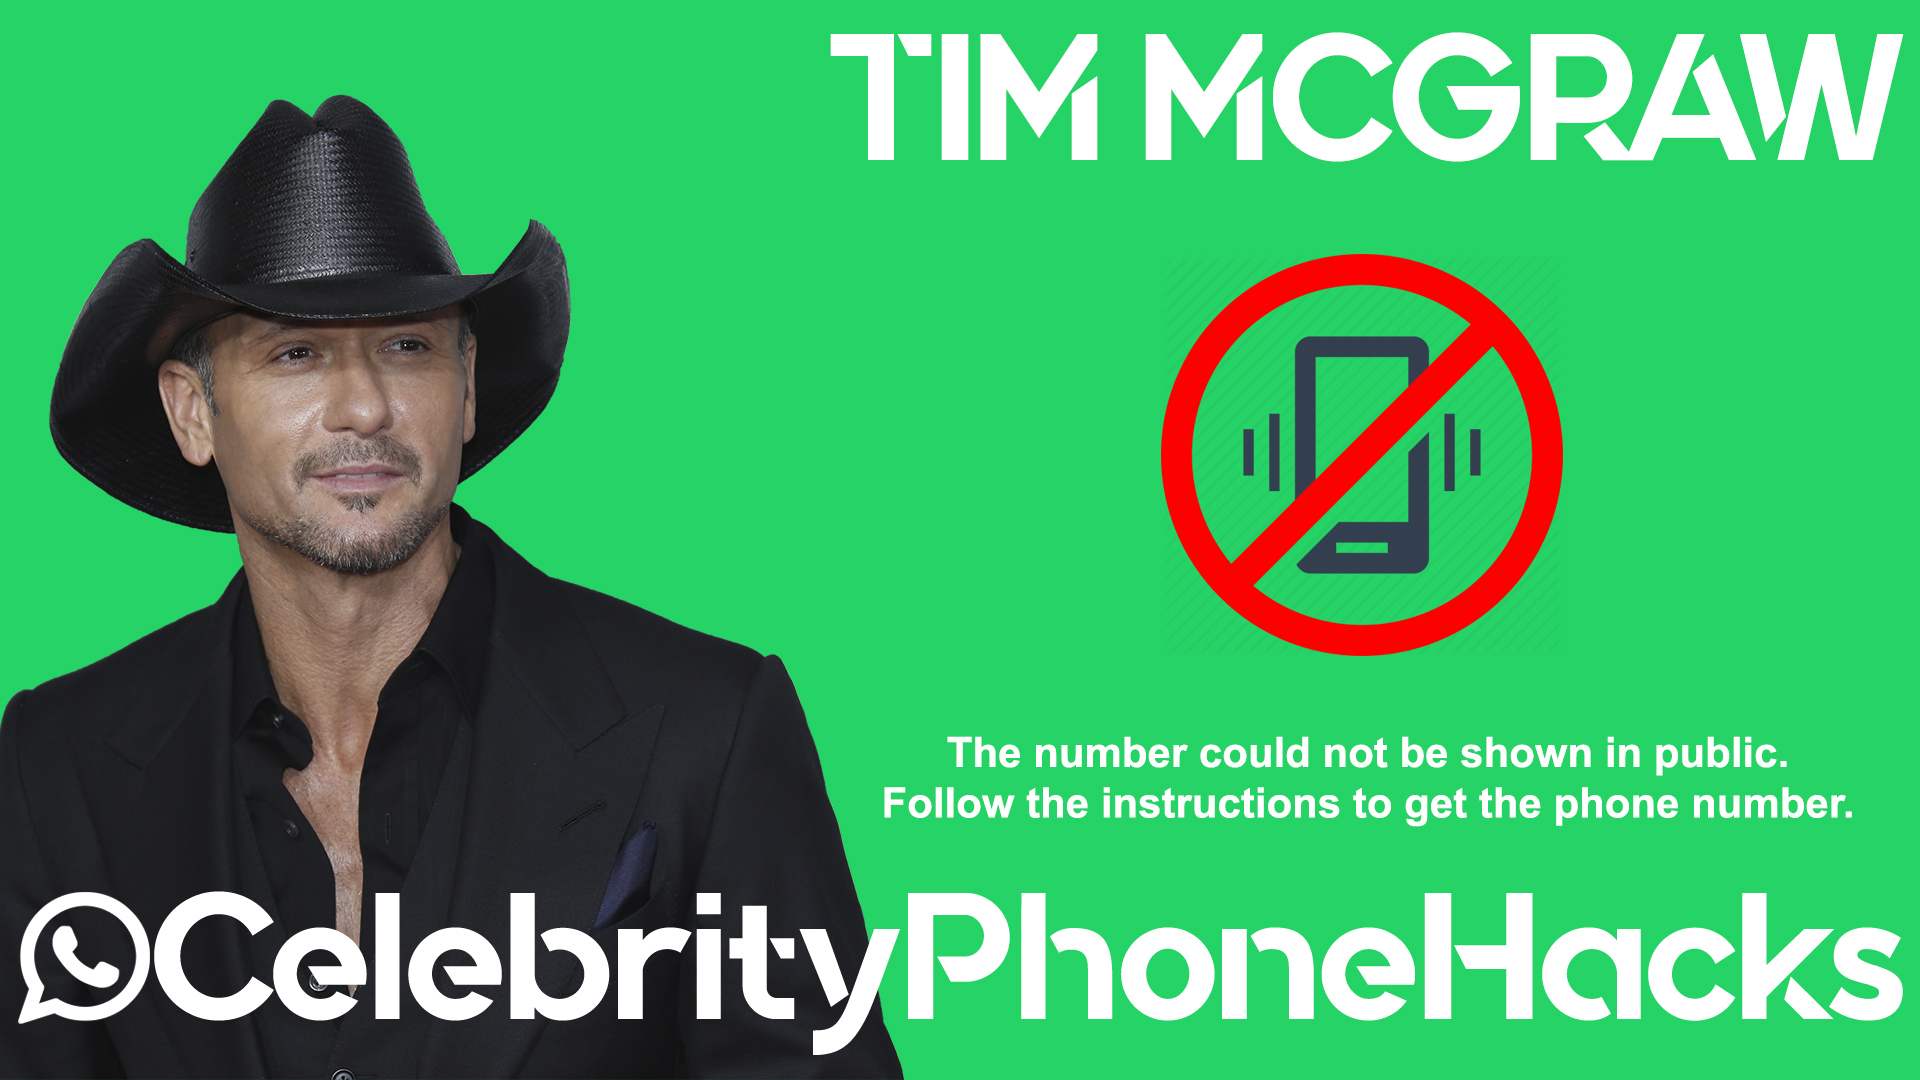 Tim McGraw real phone number 2019 whatsapp hacked leaked